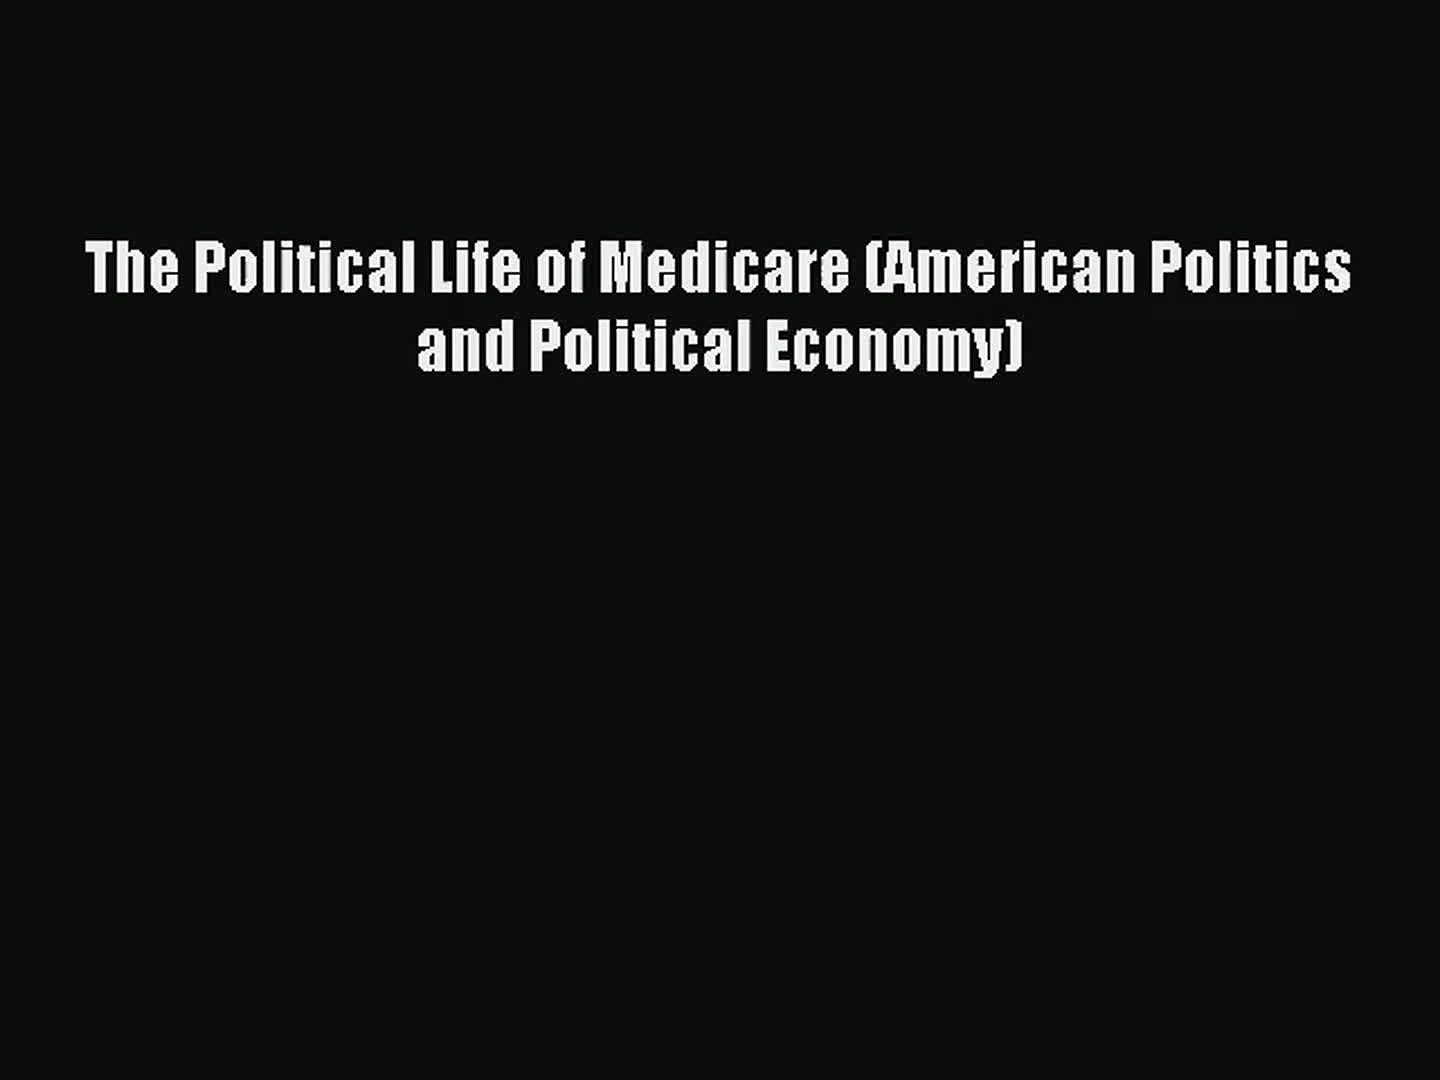 Read The Political Life of Medicare (American Politics and Political Economy)# Ebook Free